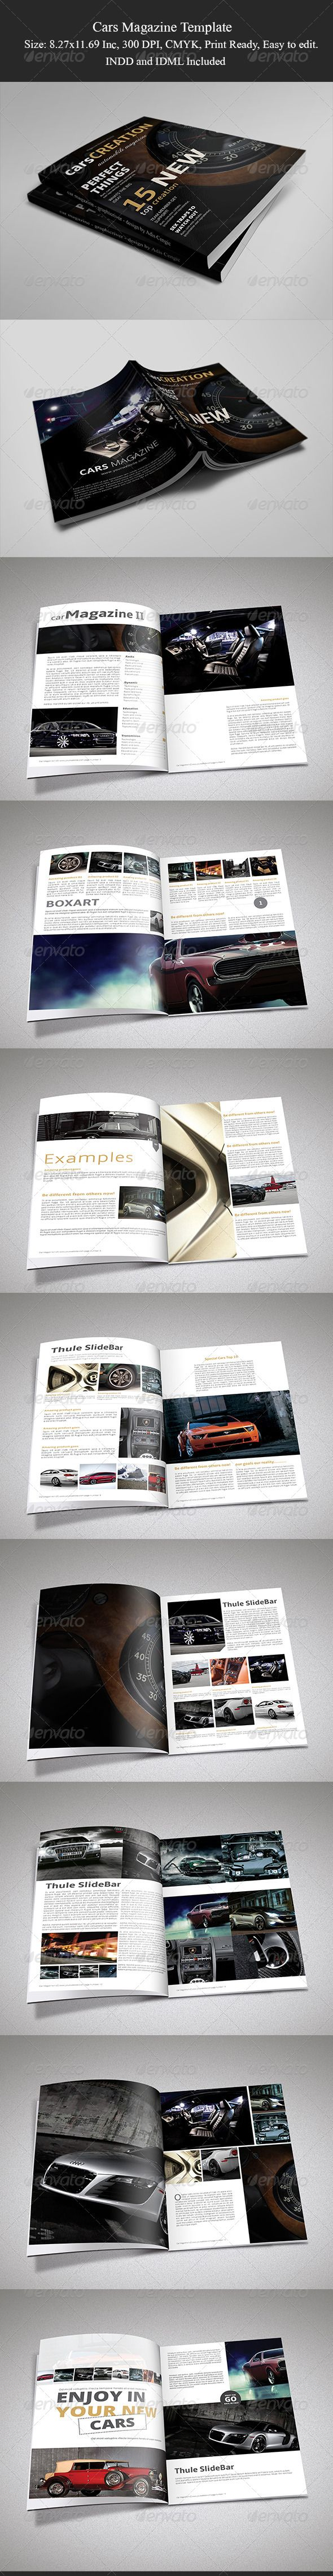 Cars Magazine Template II  #cars catalogue  #InDesign #8.27x11.69 • Click here to download ! http://graphicriver.net/item/cars-magazine-template-ii/6193736?s_rank=72&ref=pxcr